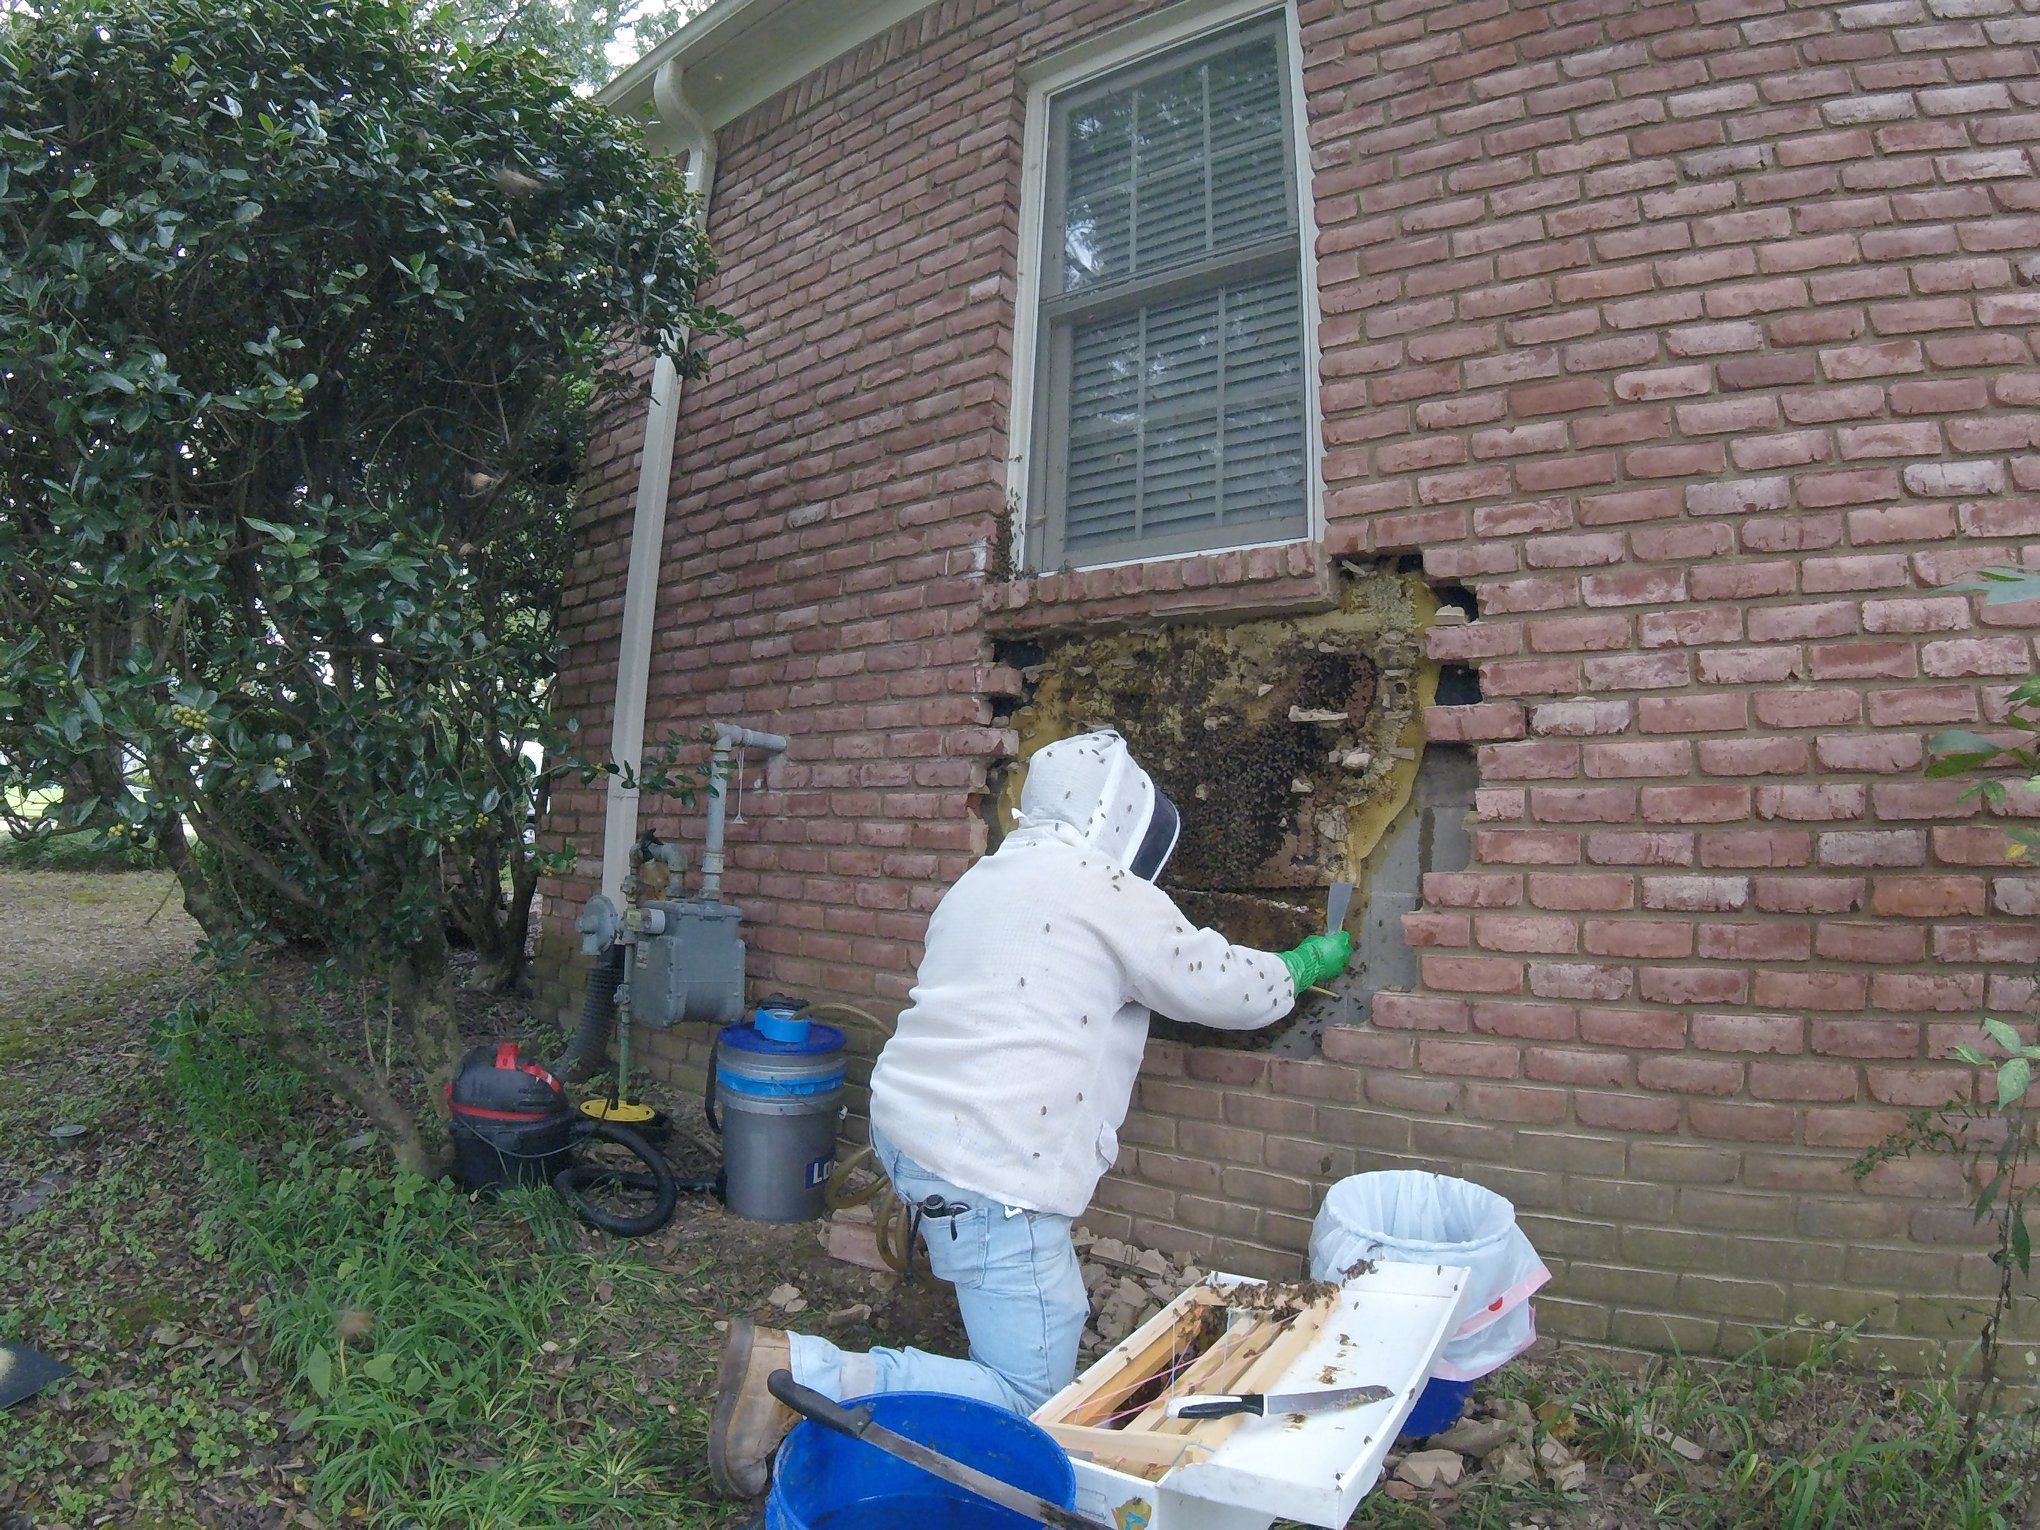 Bee keep removes bee hive from wall